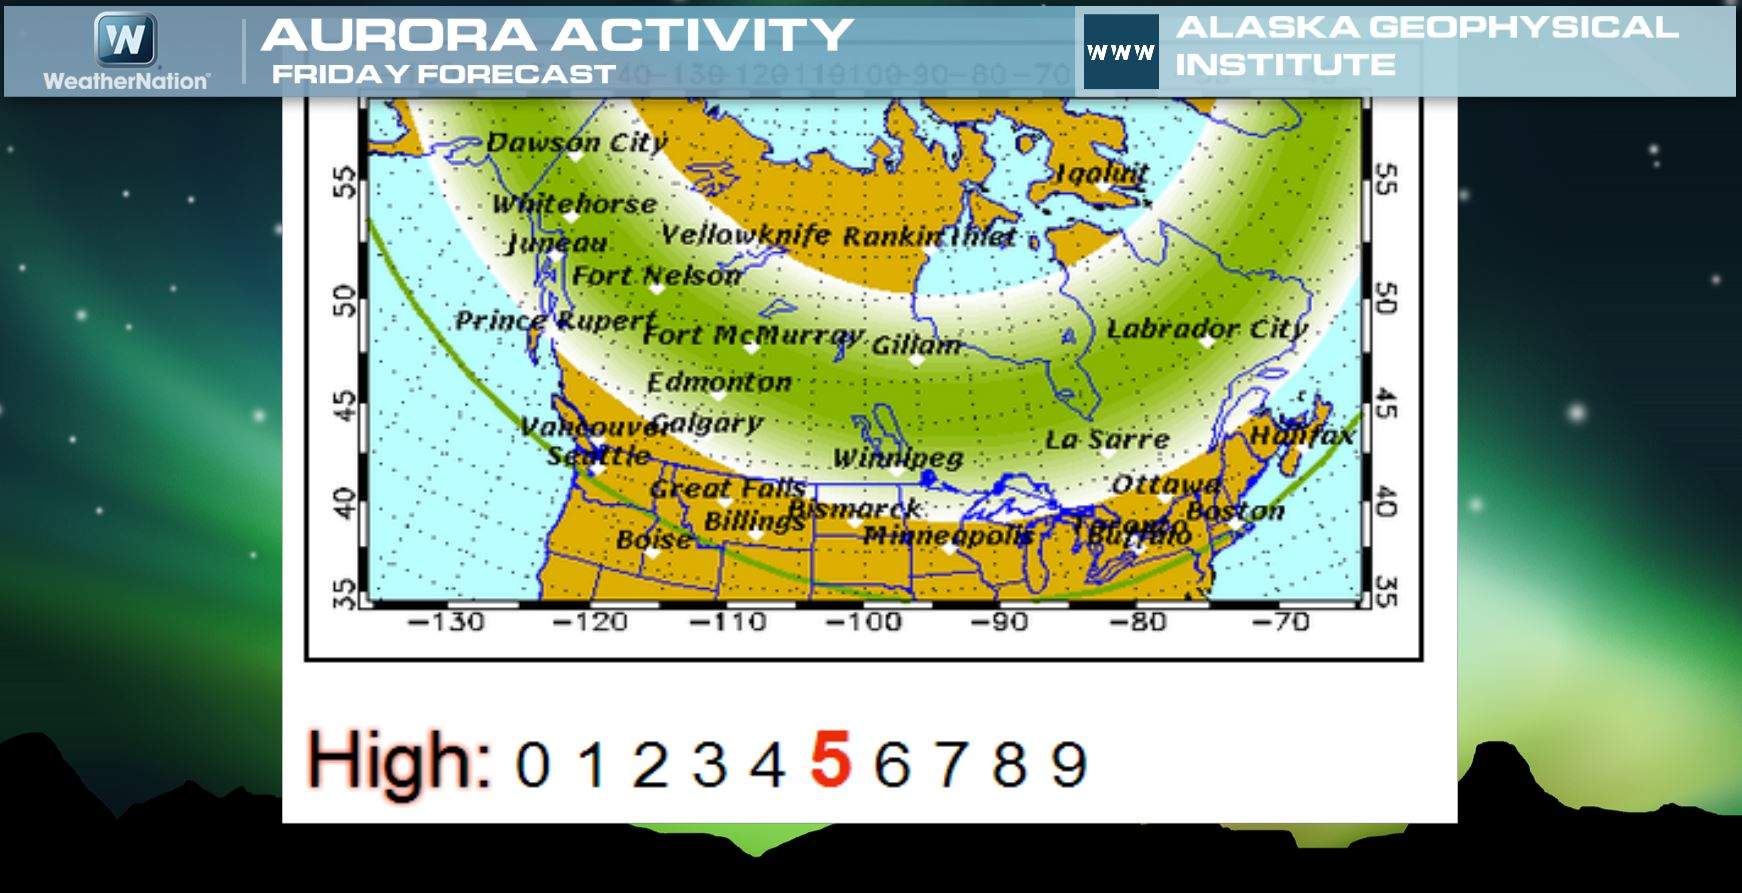 Fairbanks Alaska Northern Lights Forecast